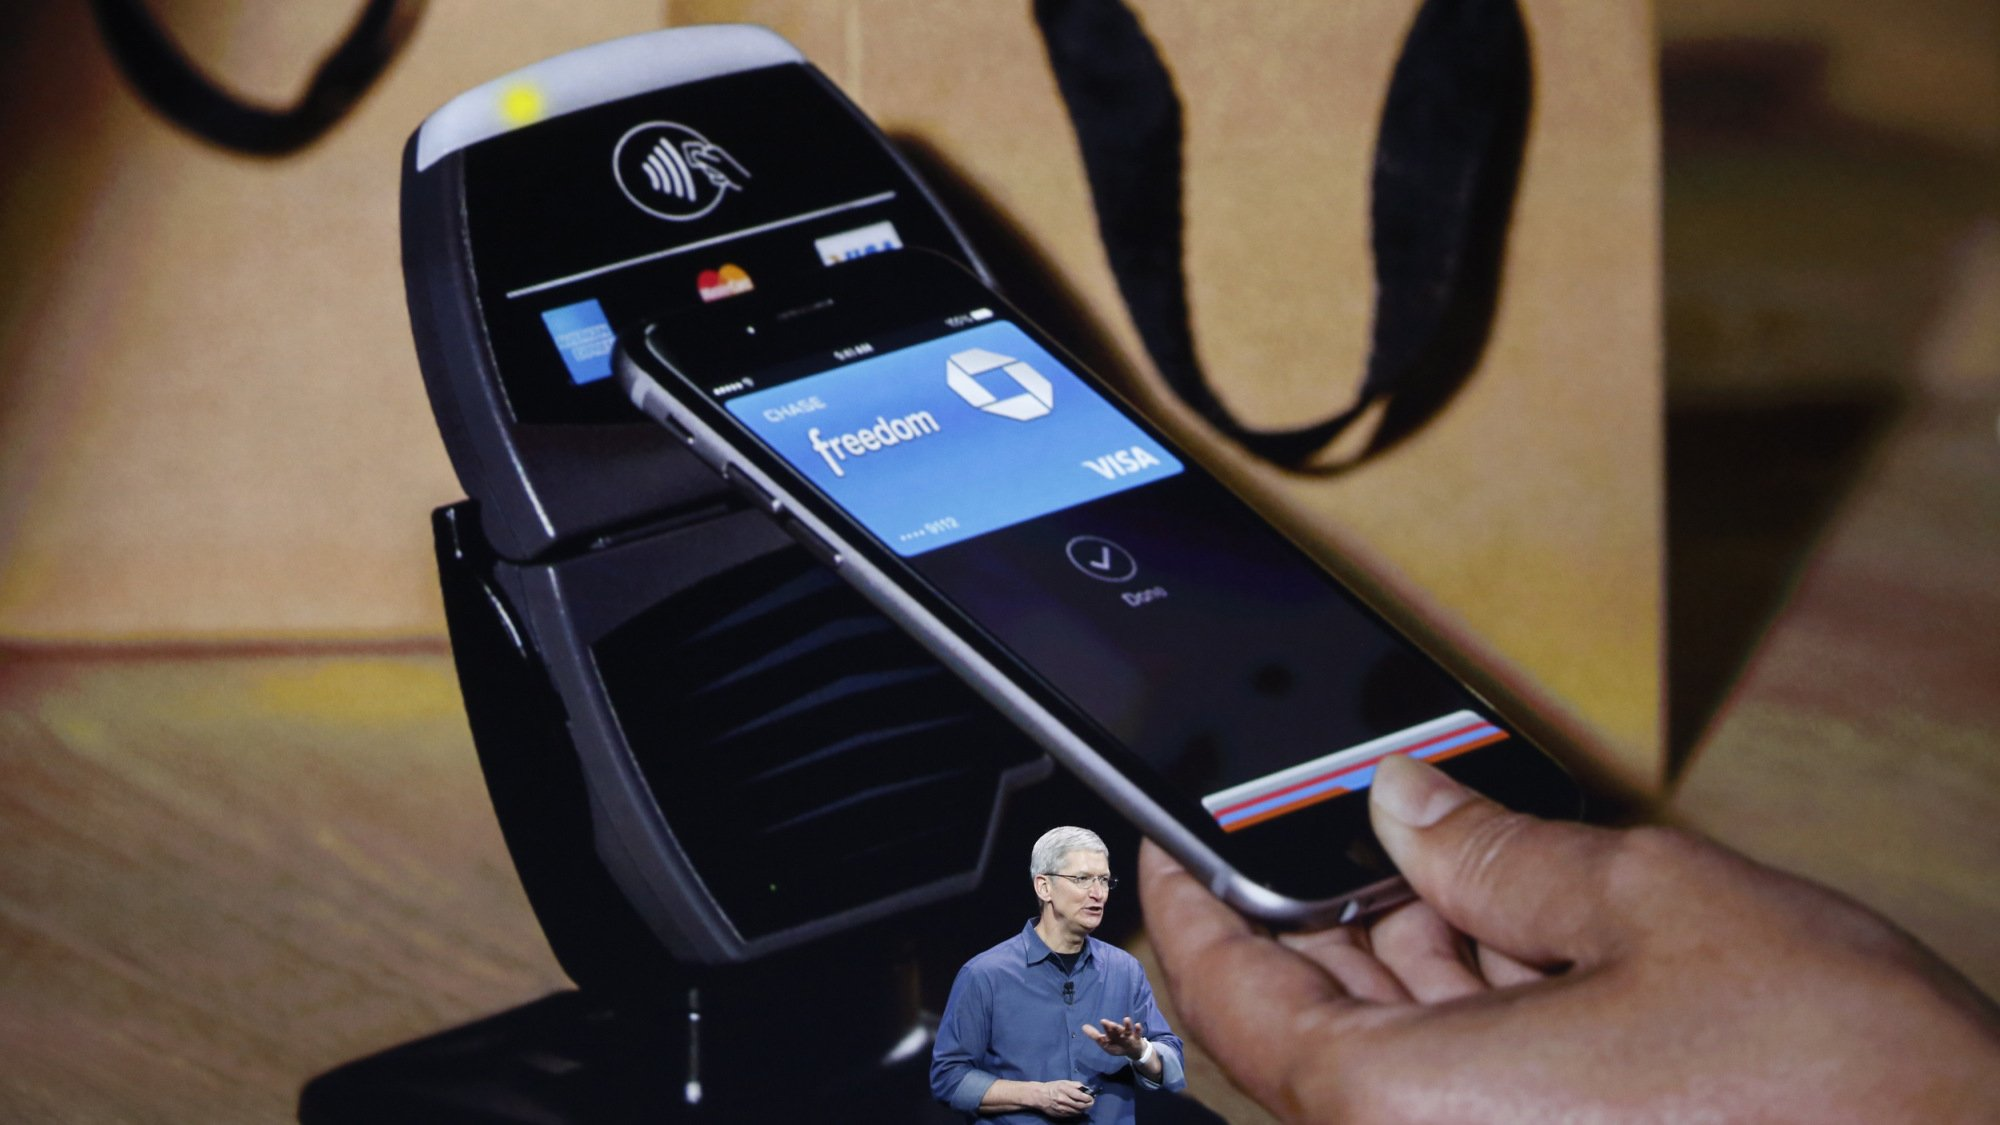 Apple Pay could soon be launched across Europe, Middle East, India and Africa